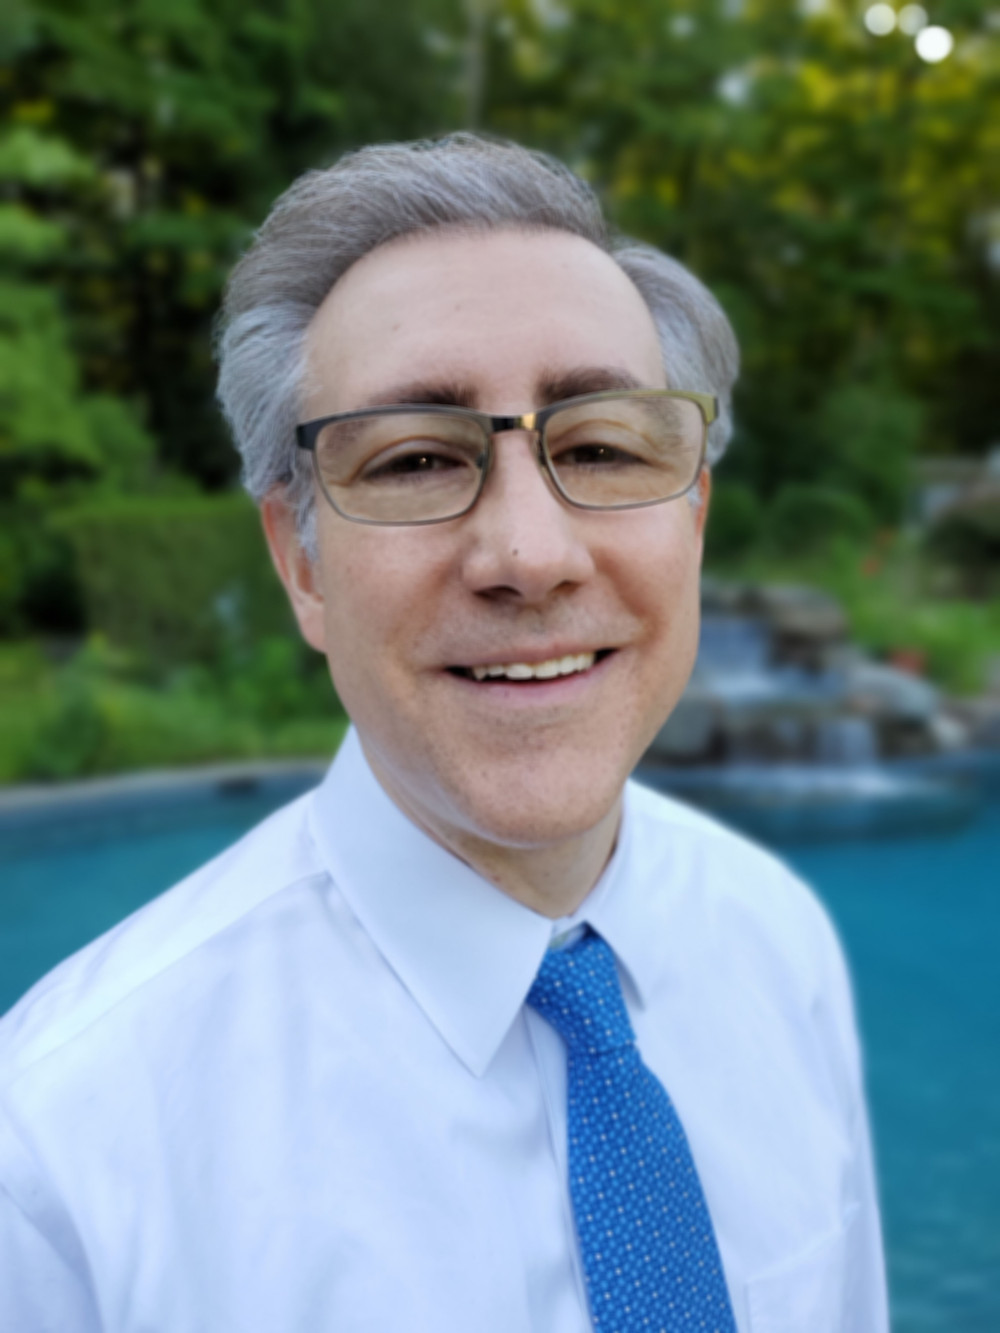 Seth Mandel, MD, MBA Joins the Lukin Center for Psychotherapy, Bergen County Moms